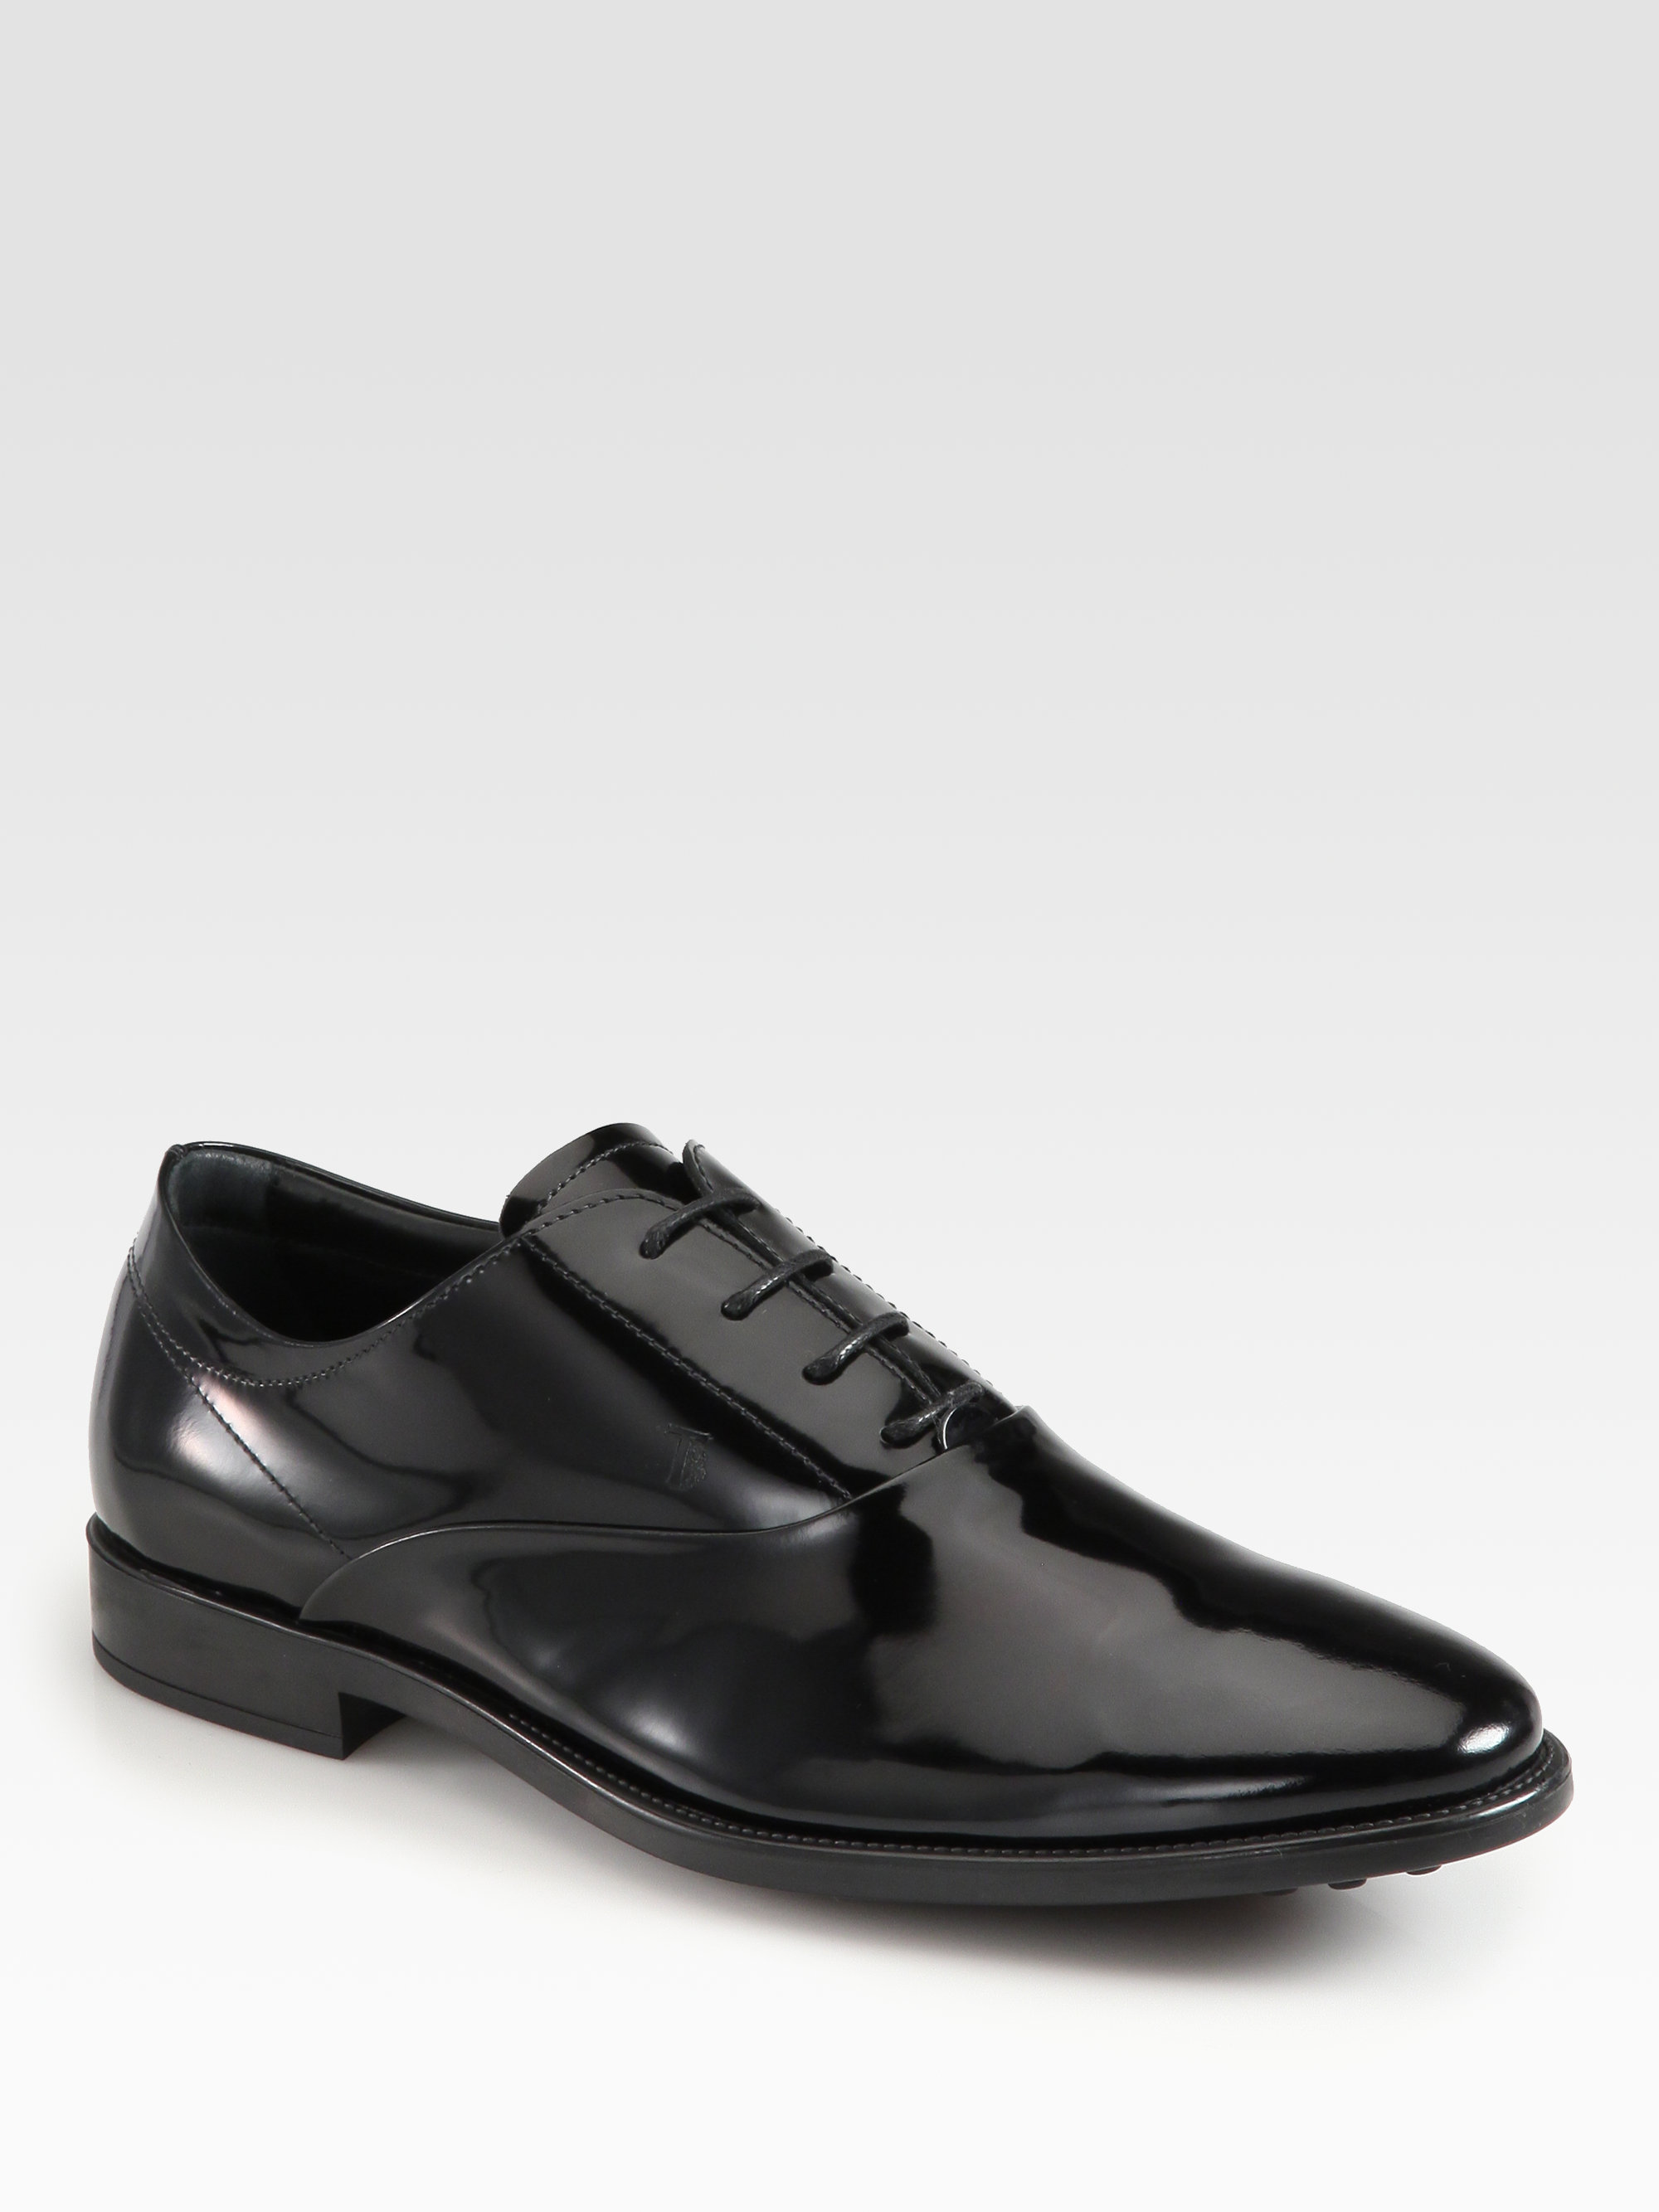 Tod's Patent Leather Laceup Oxfords in